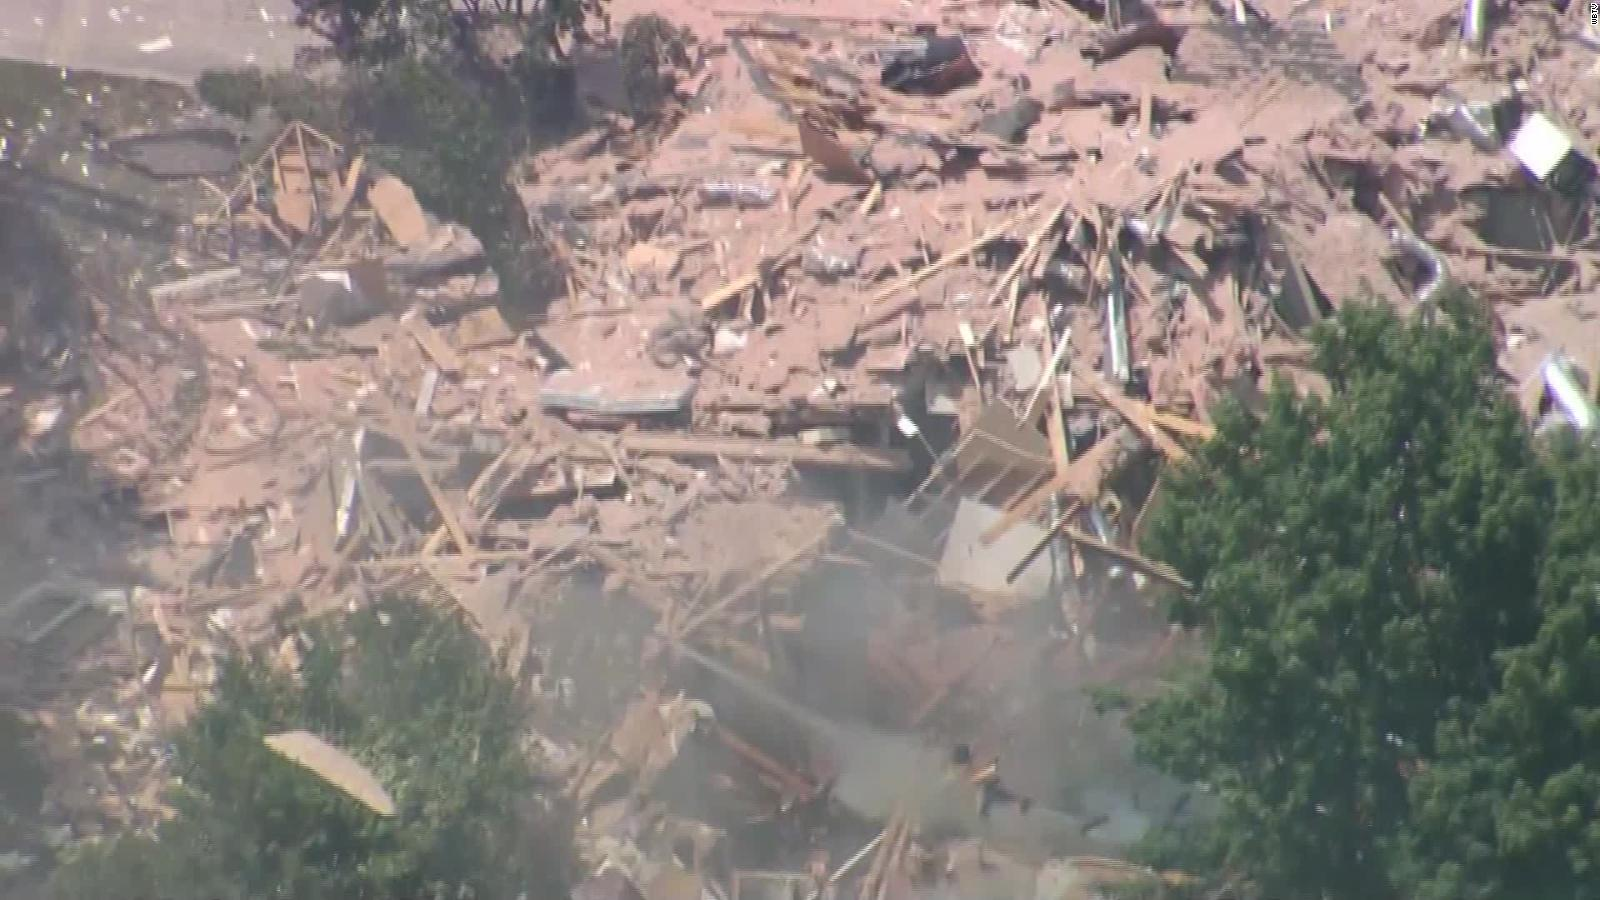 Explosion levels home in North Carolina